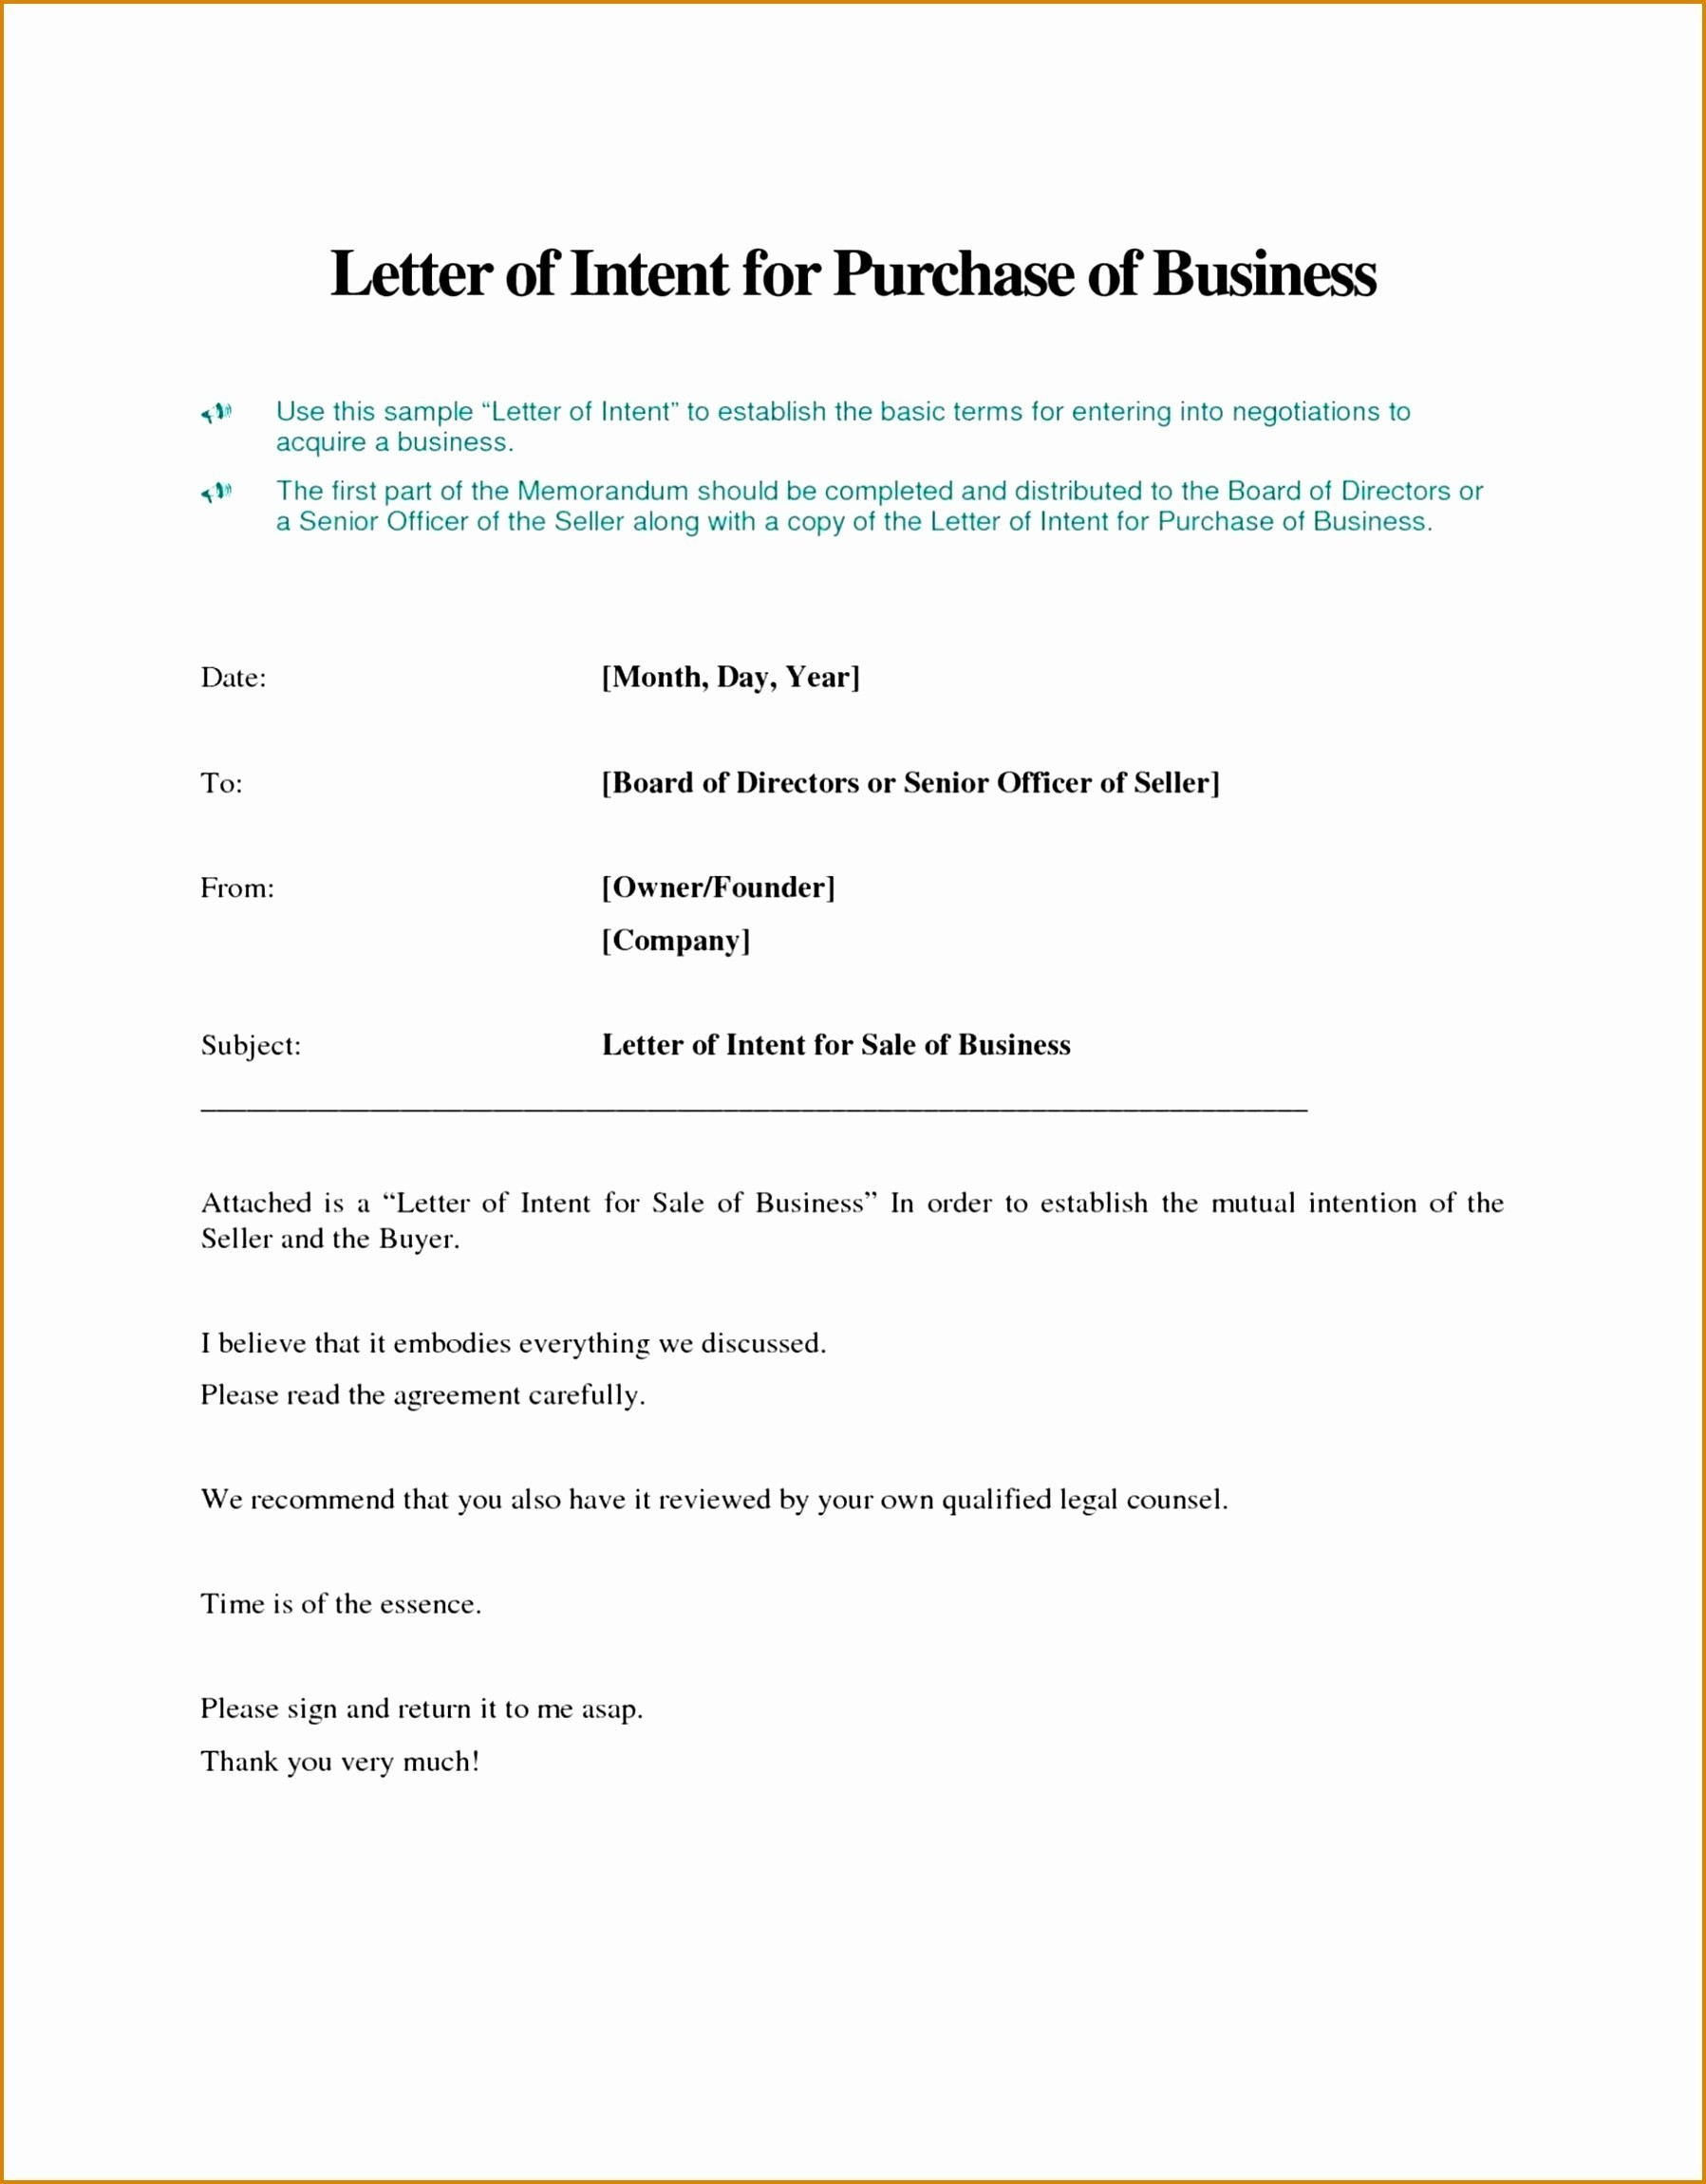 Letter of intent to sell a business template examples letter templates letter of intent to sell a business template letter intent to do business template best fbccfo